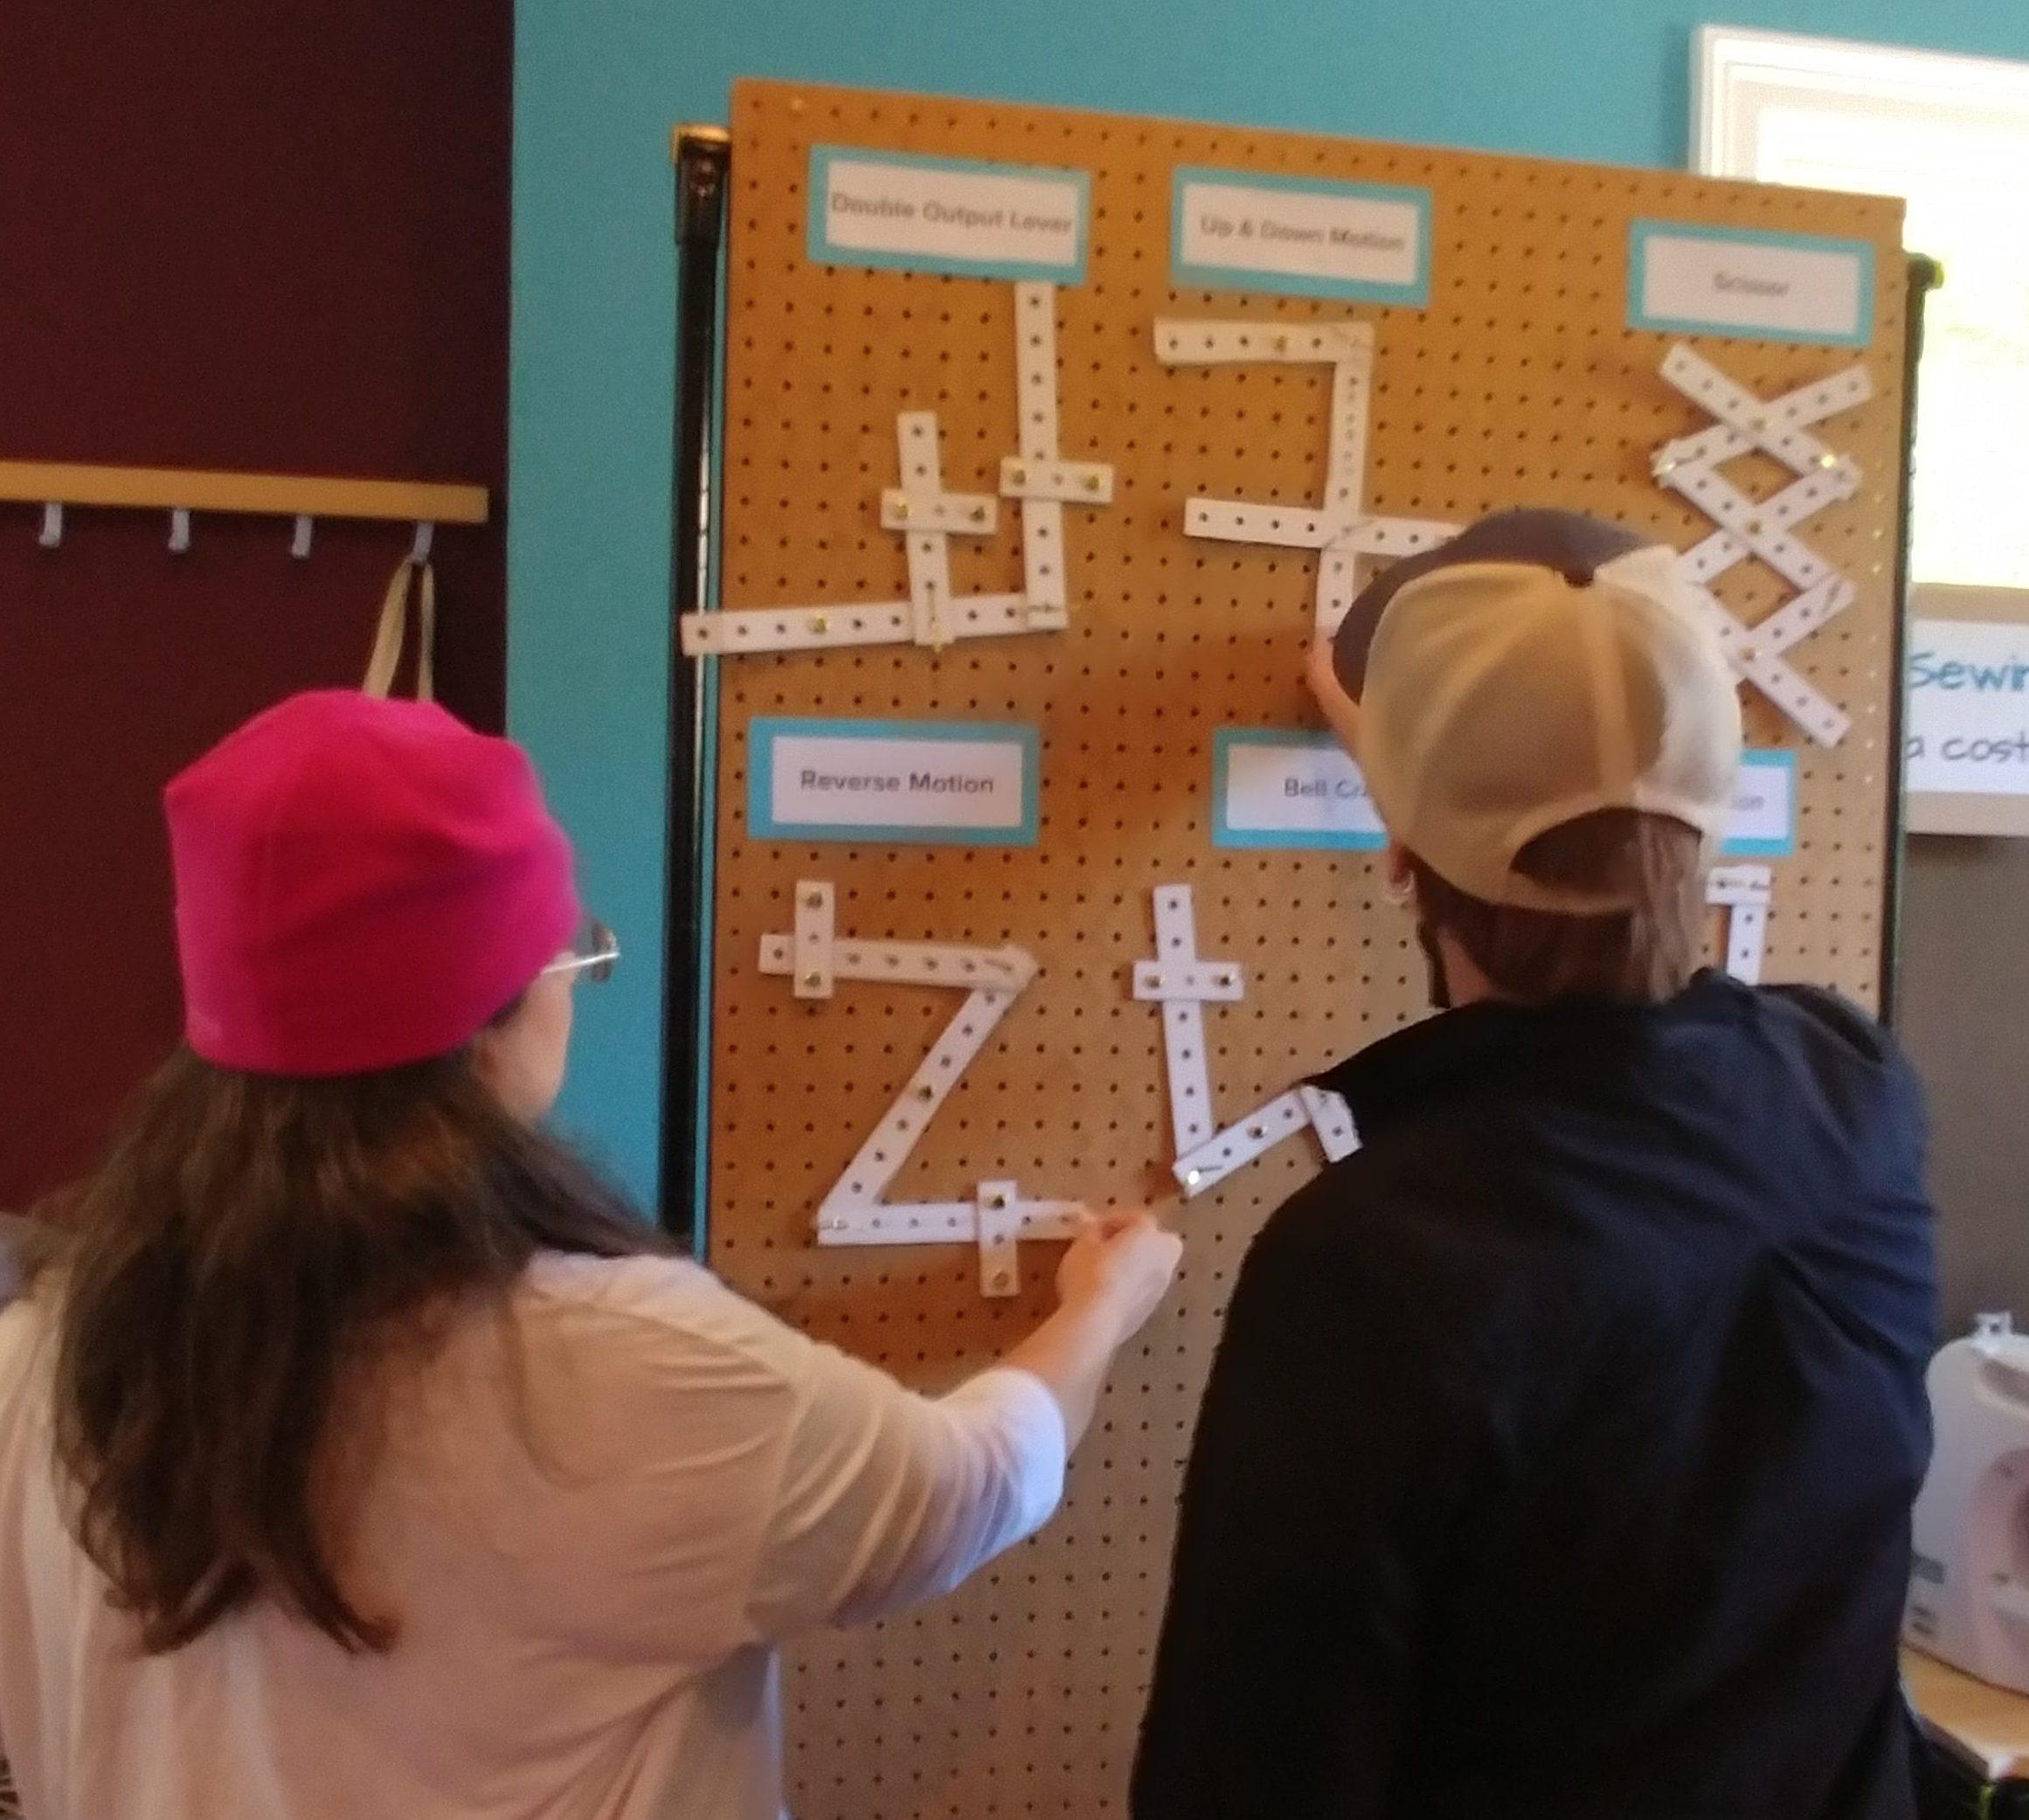 Two women, workshop attendees, stand in front of a pegboard with examples of various types of cardboard linkages.